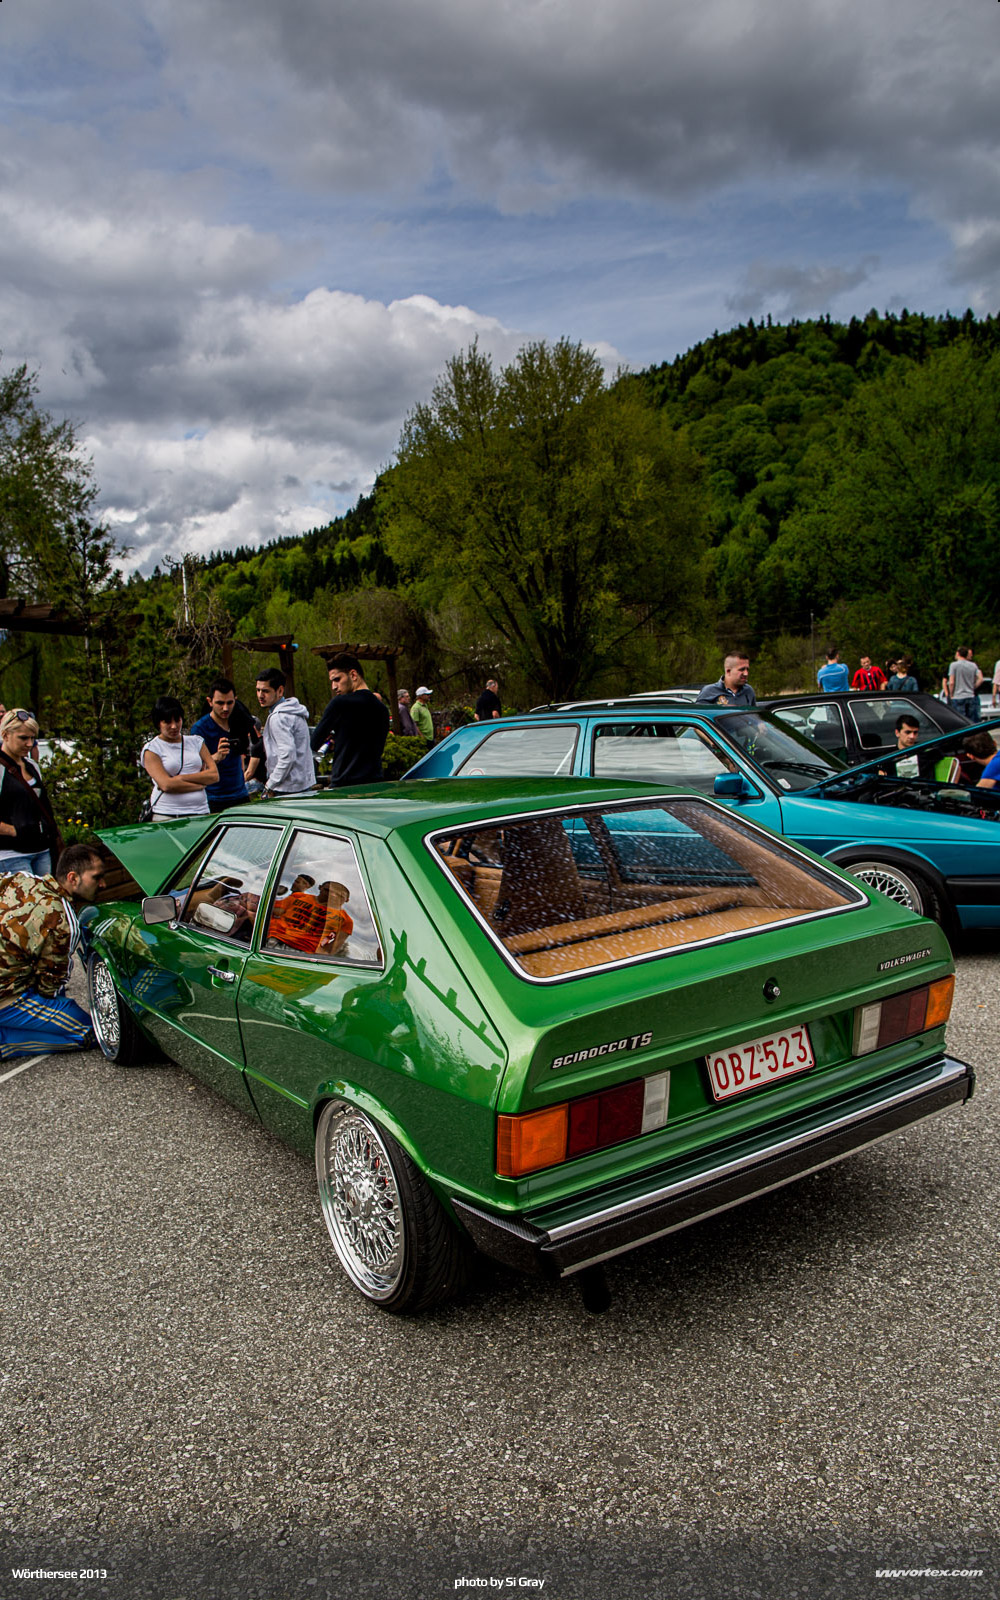 worthersee-2013-gallery-si-gray-030